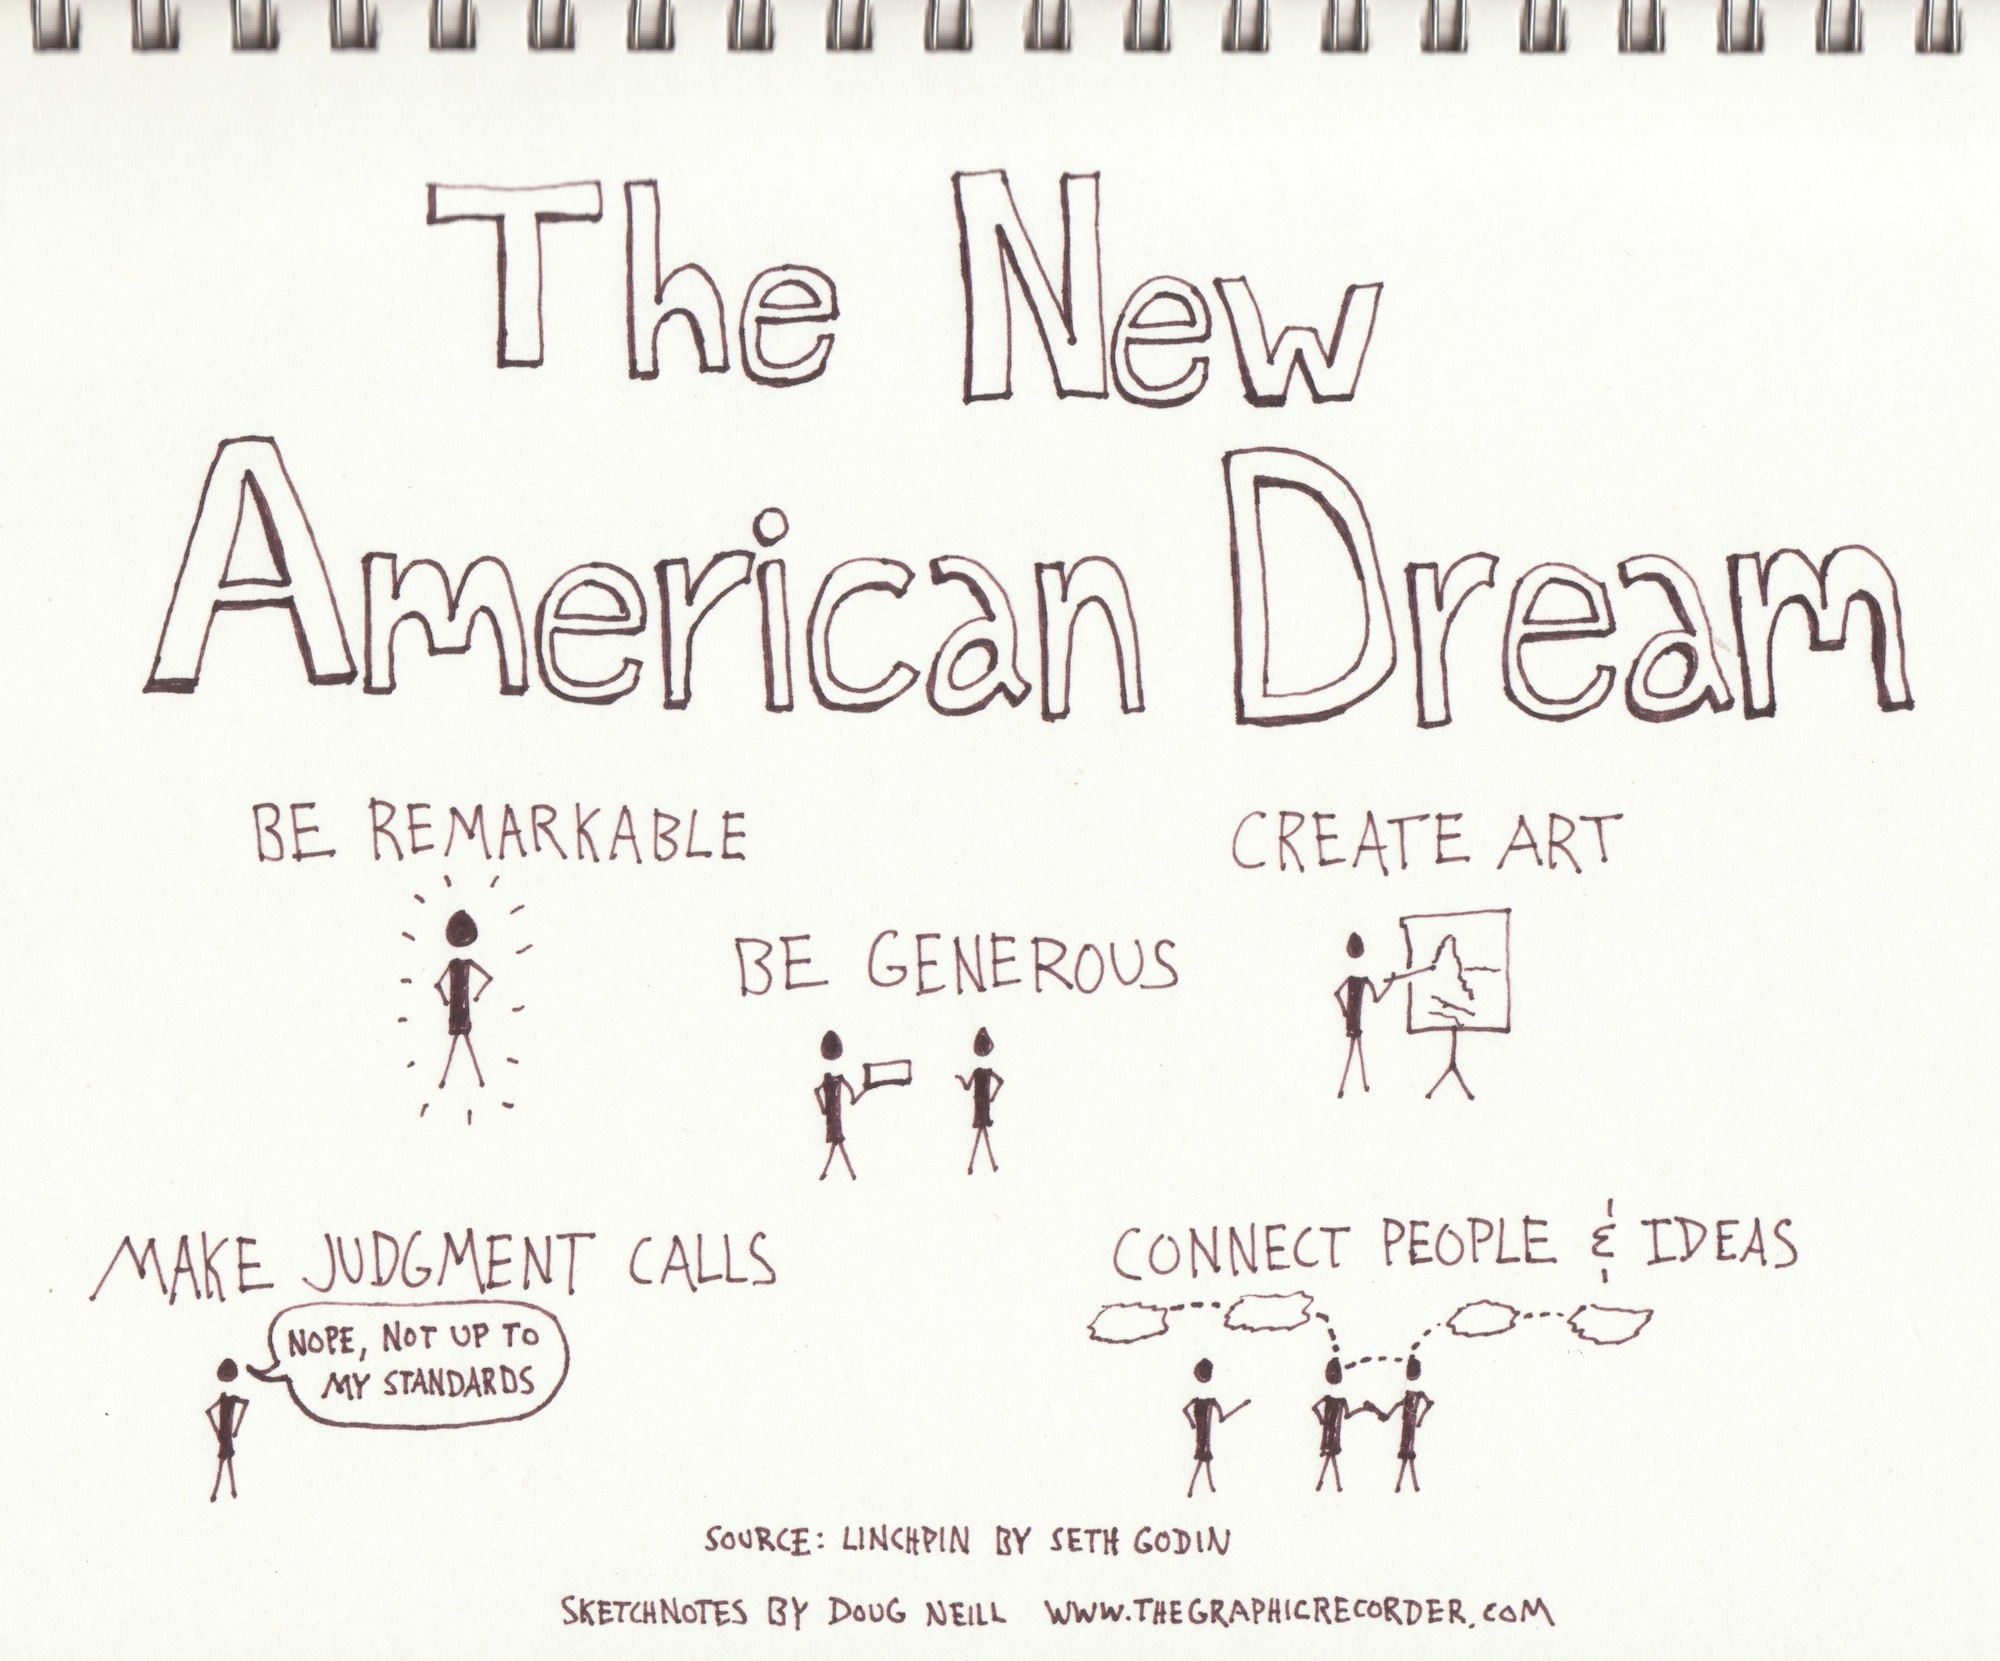 essay american dream the american dream dream or reality lessons  the american dream dream or reality lessons teach a sketch of the new american dream the